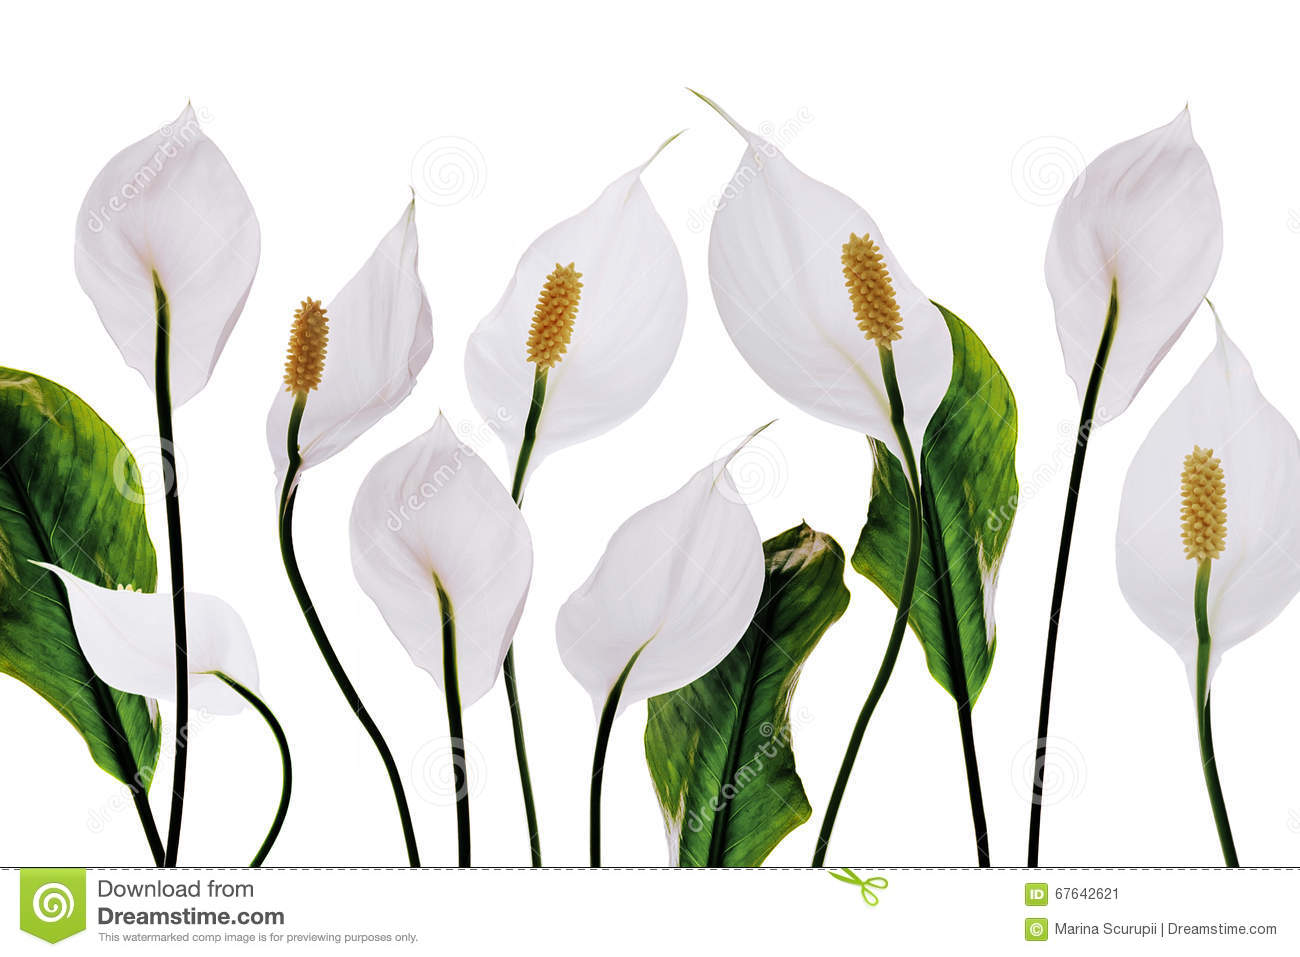 Lilies white flowers stock image image of flowers seed 67642621 download lilies white flowers stock image image of flowers seed 67642621 izmirmasajfo